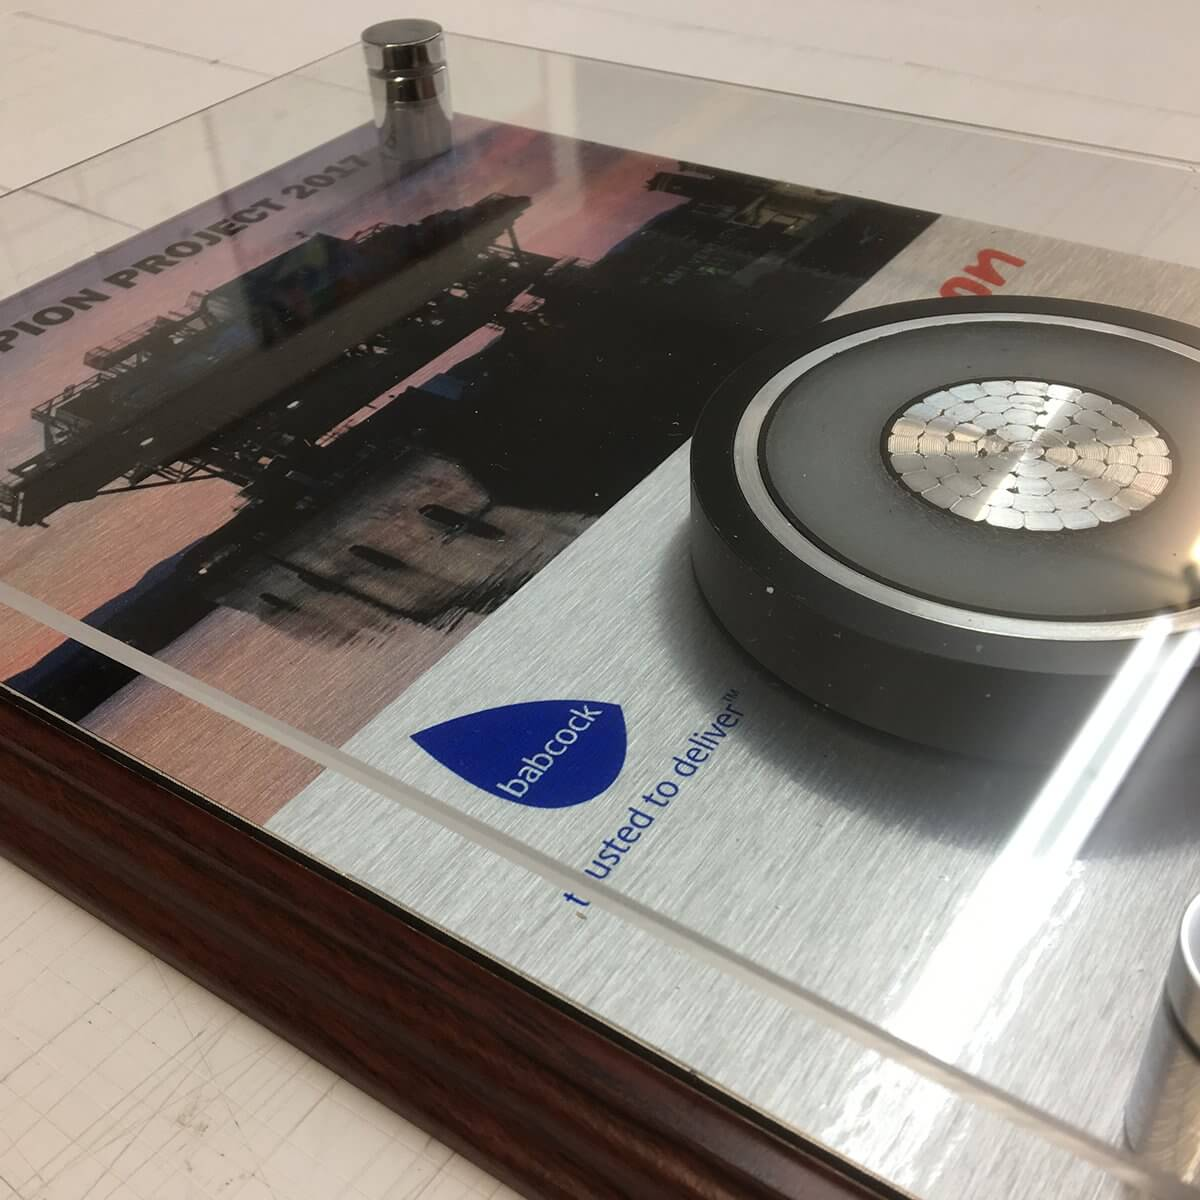 Engraving and printed plaques